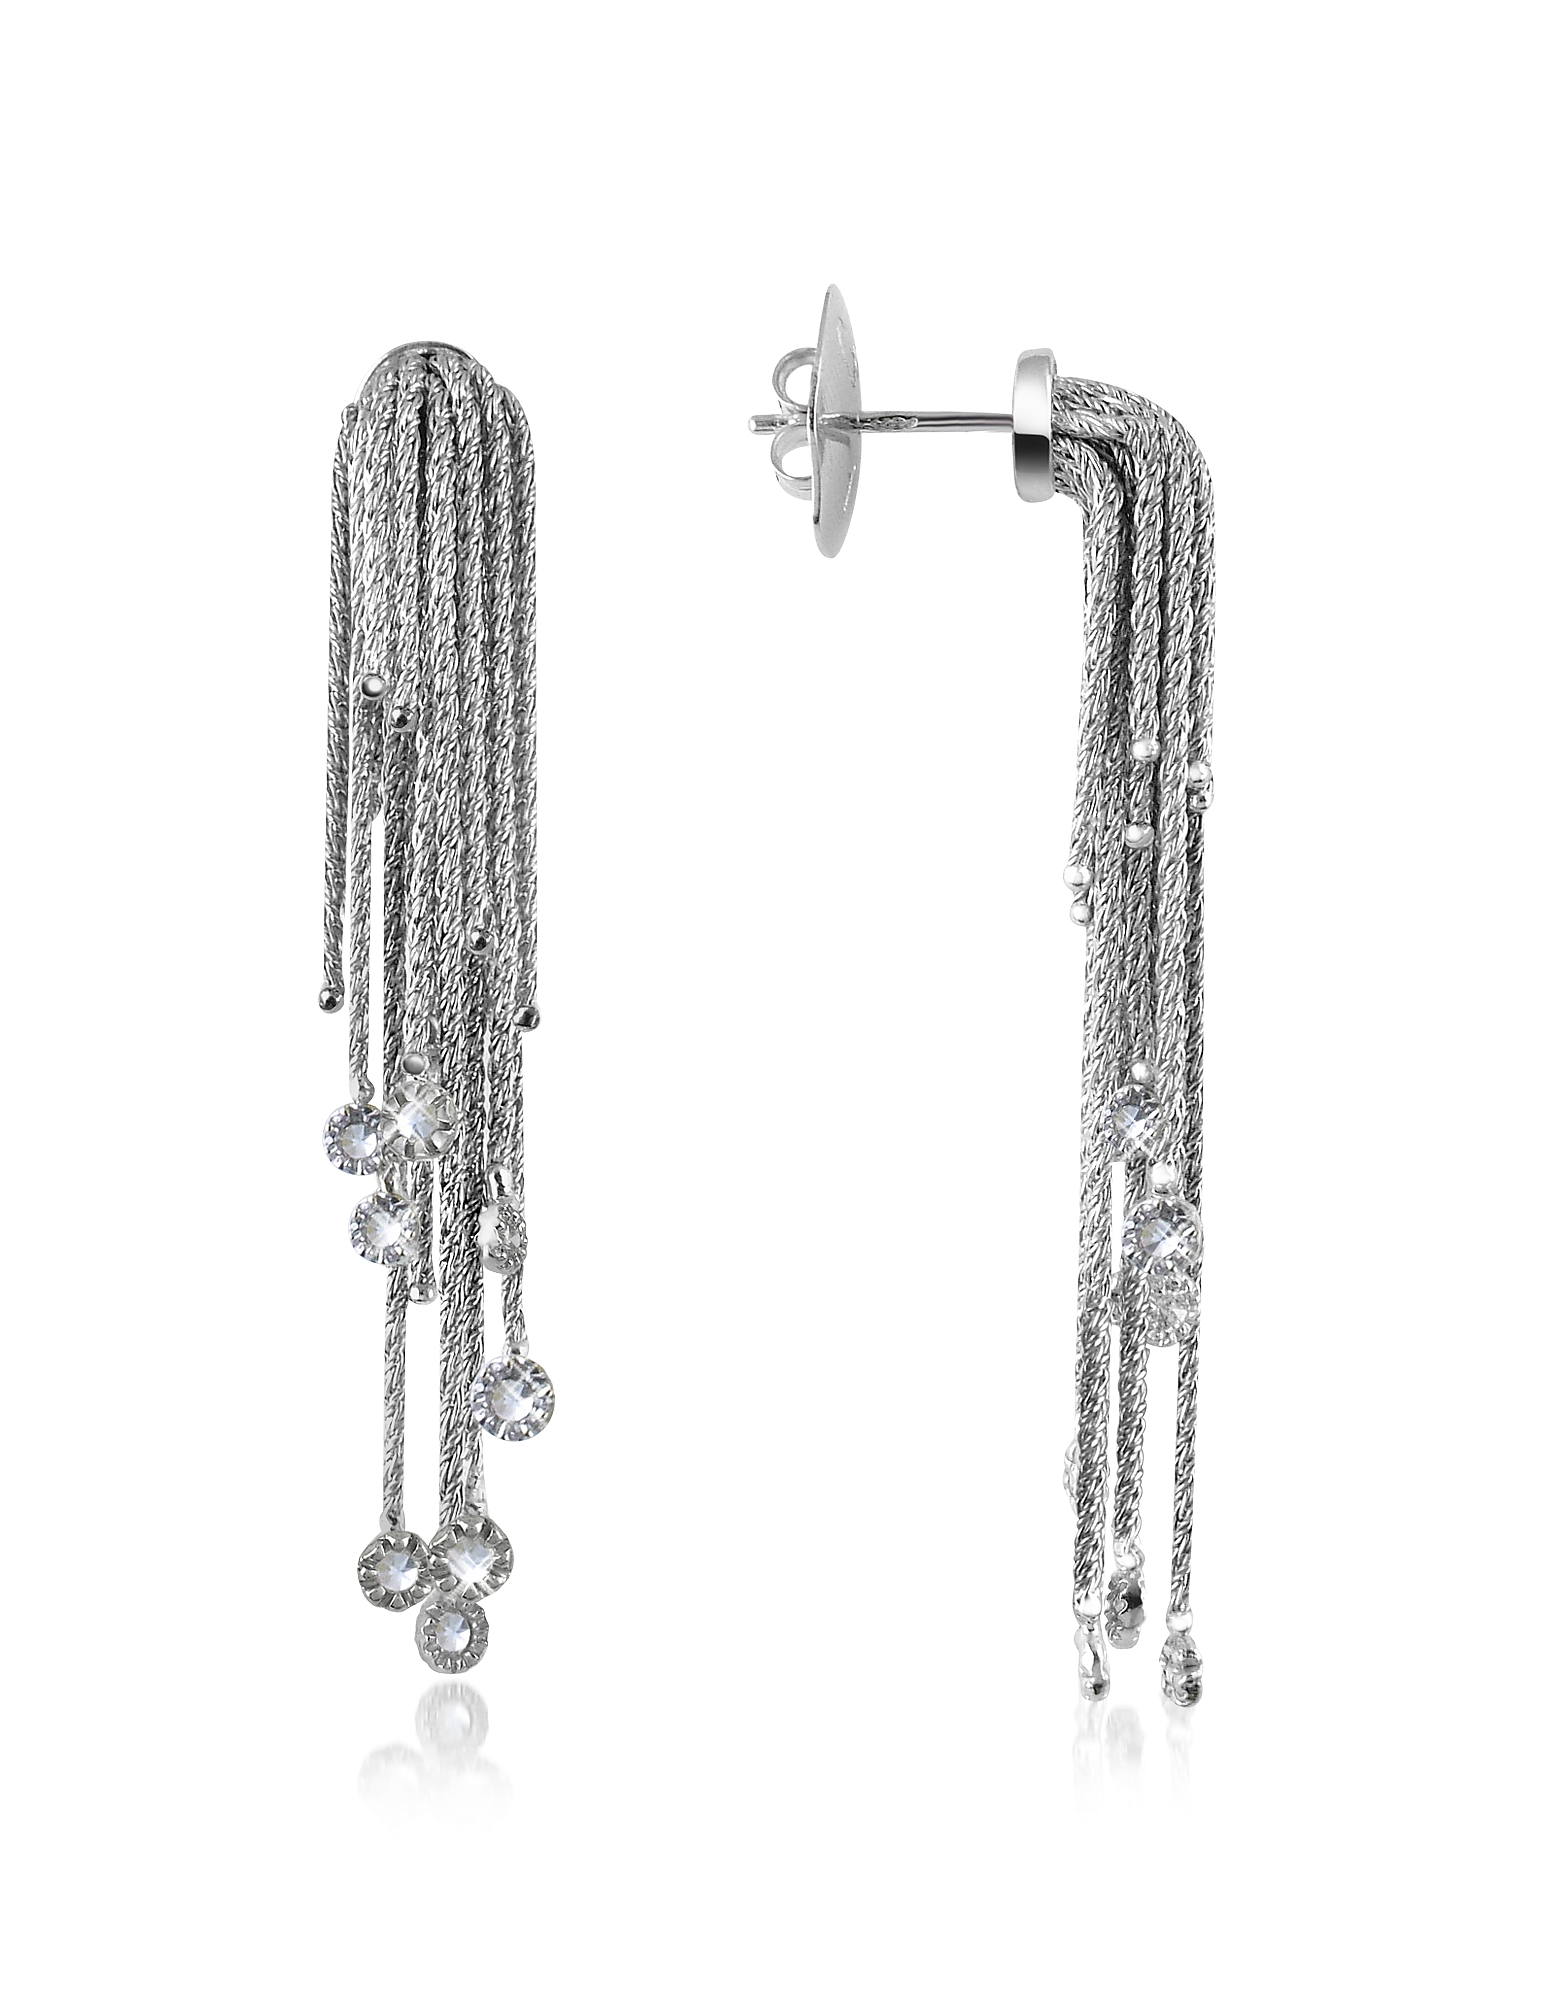 Orlando Orlandini Designer Earrings, Flirt - Diamond Drops 18K White Gold Earrings